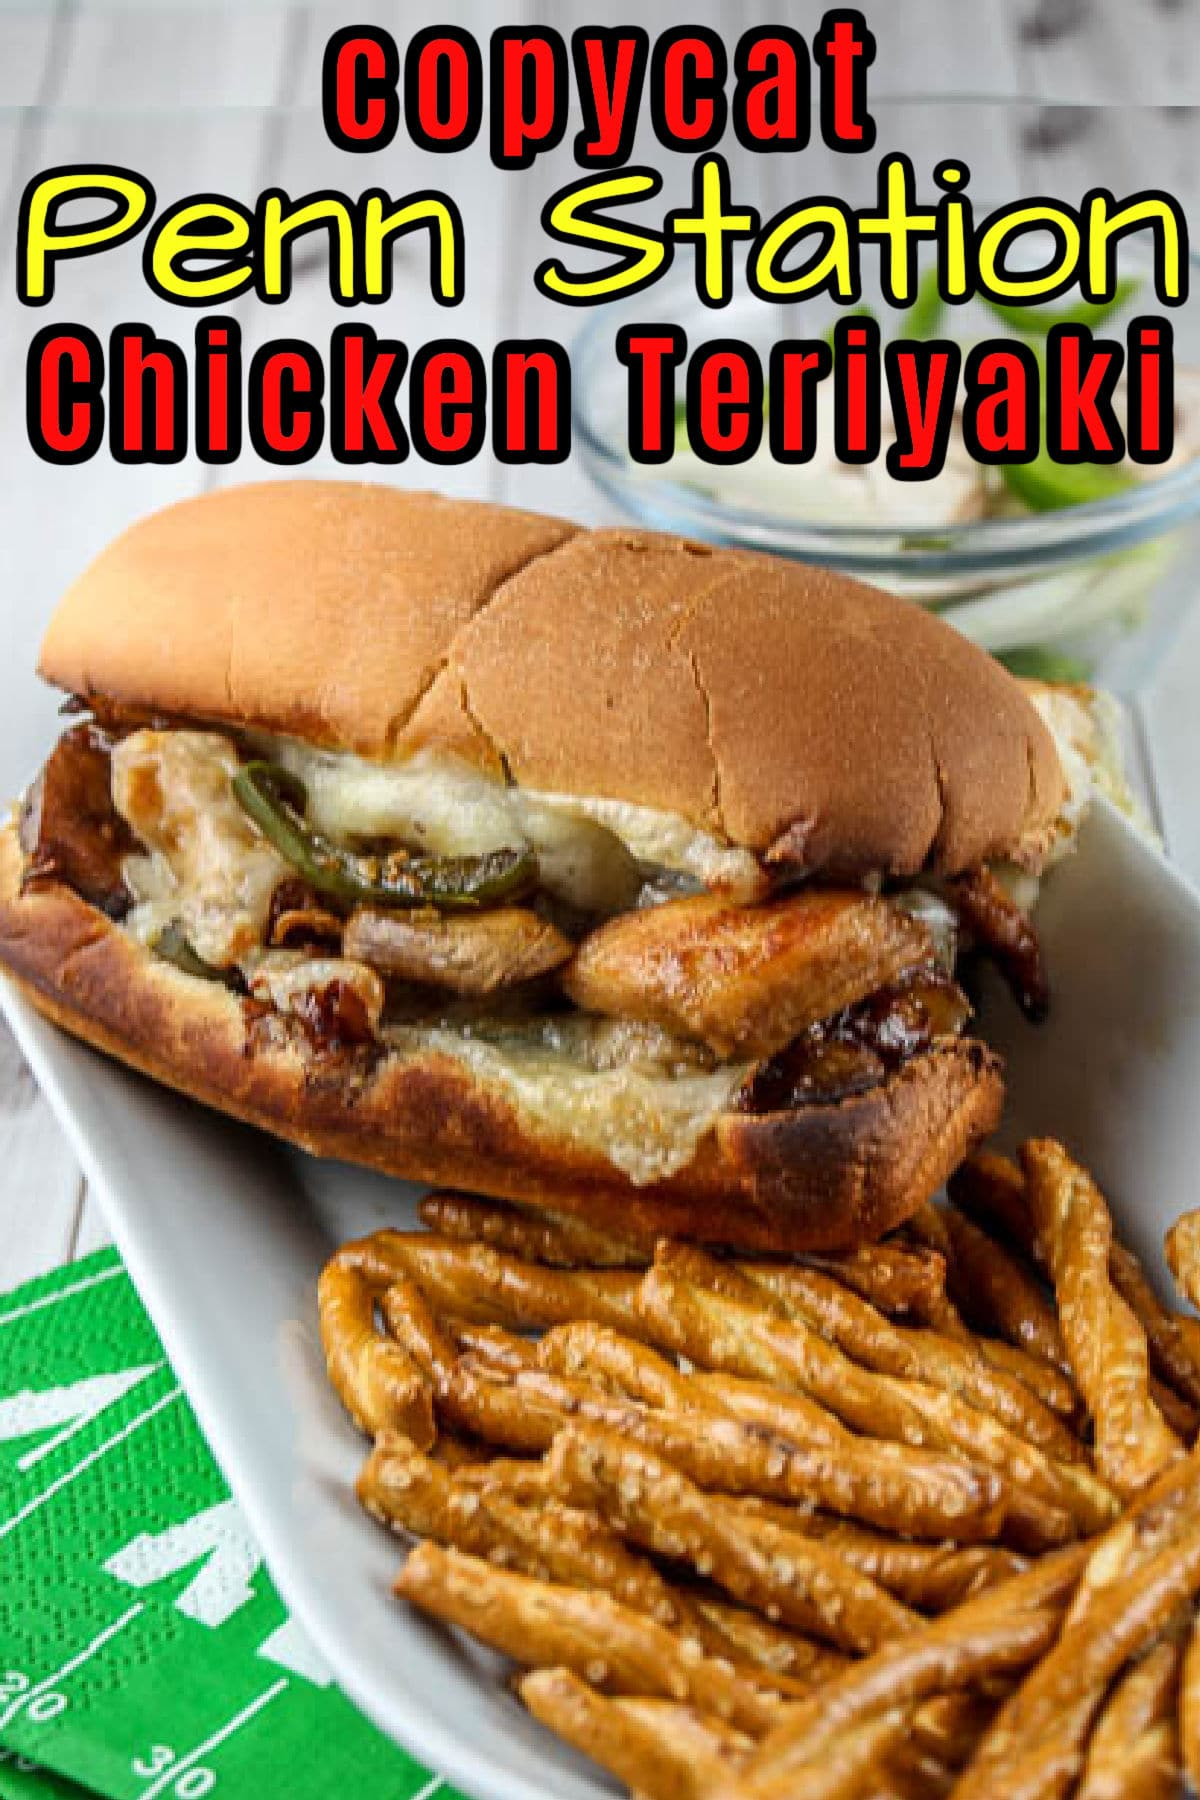 The Penn Station Chicken Teriyaki sub is one of my favorite Cincinnati area sandwiches and it is so delicious! It's tangy and filled with chicken, veggies and – of course – cheese! You'll love it! via @foodhussy